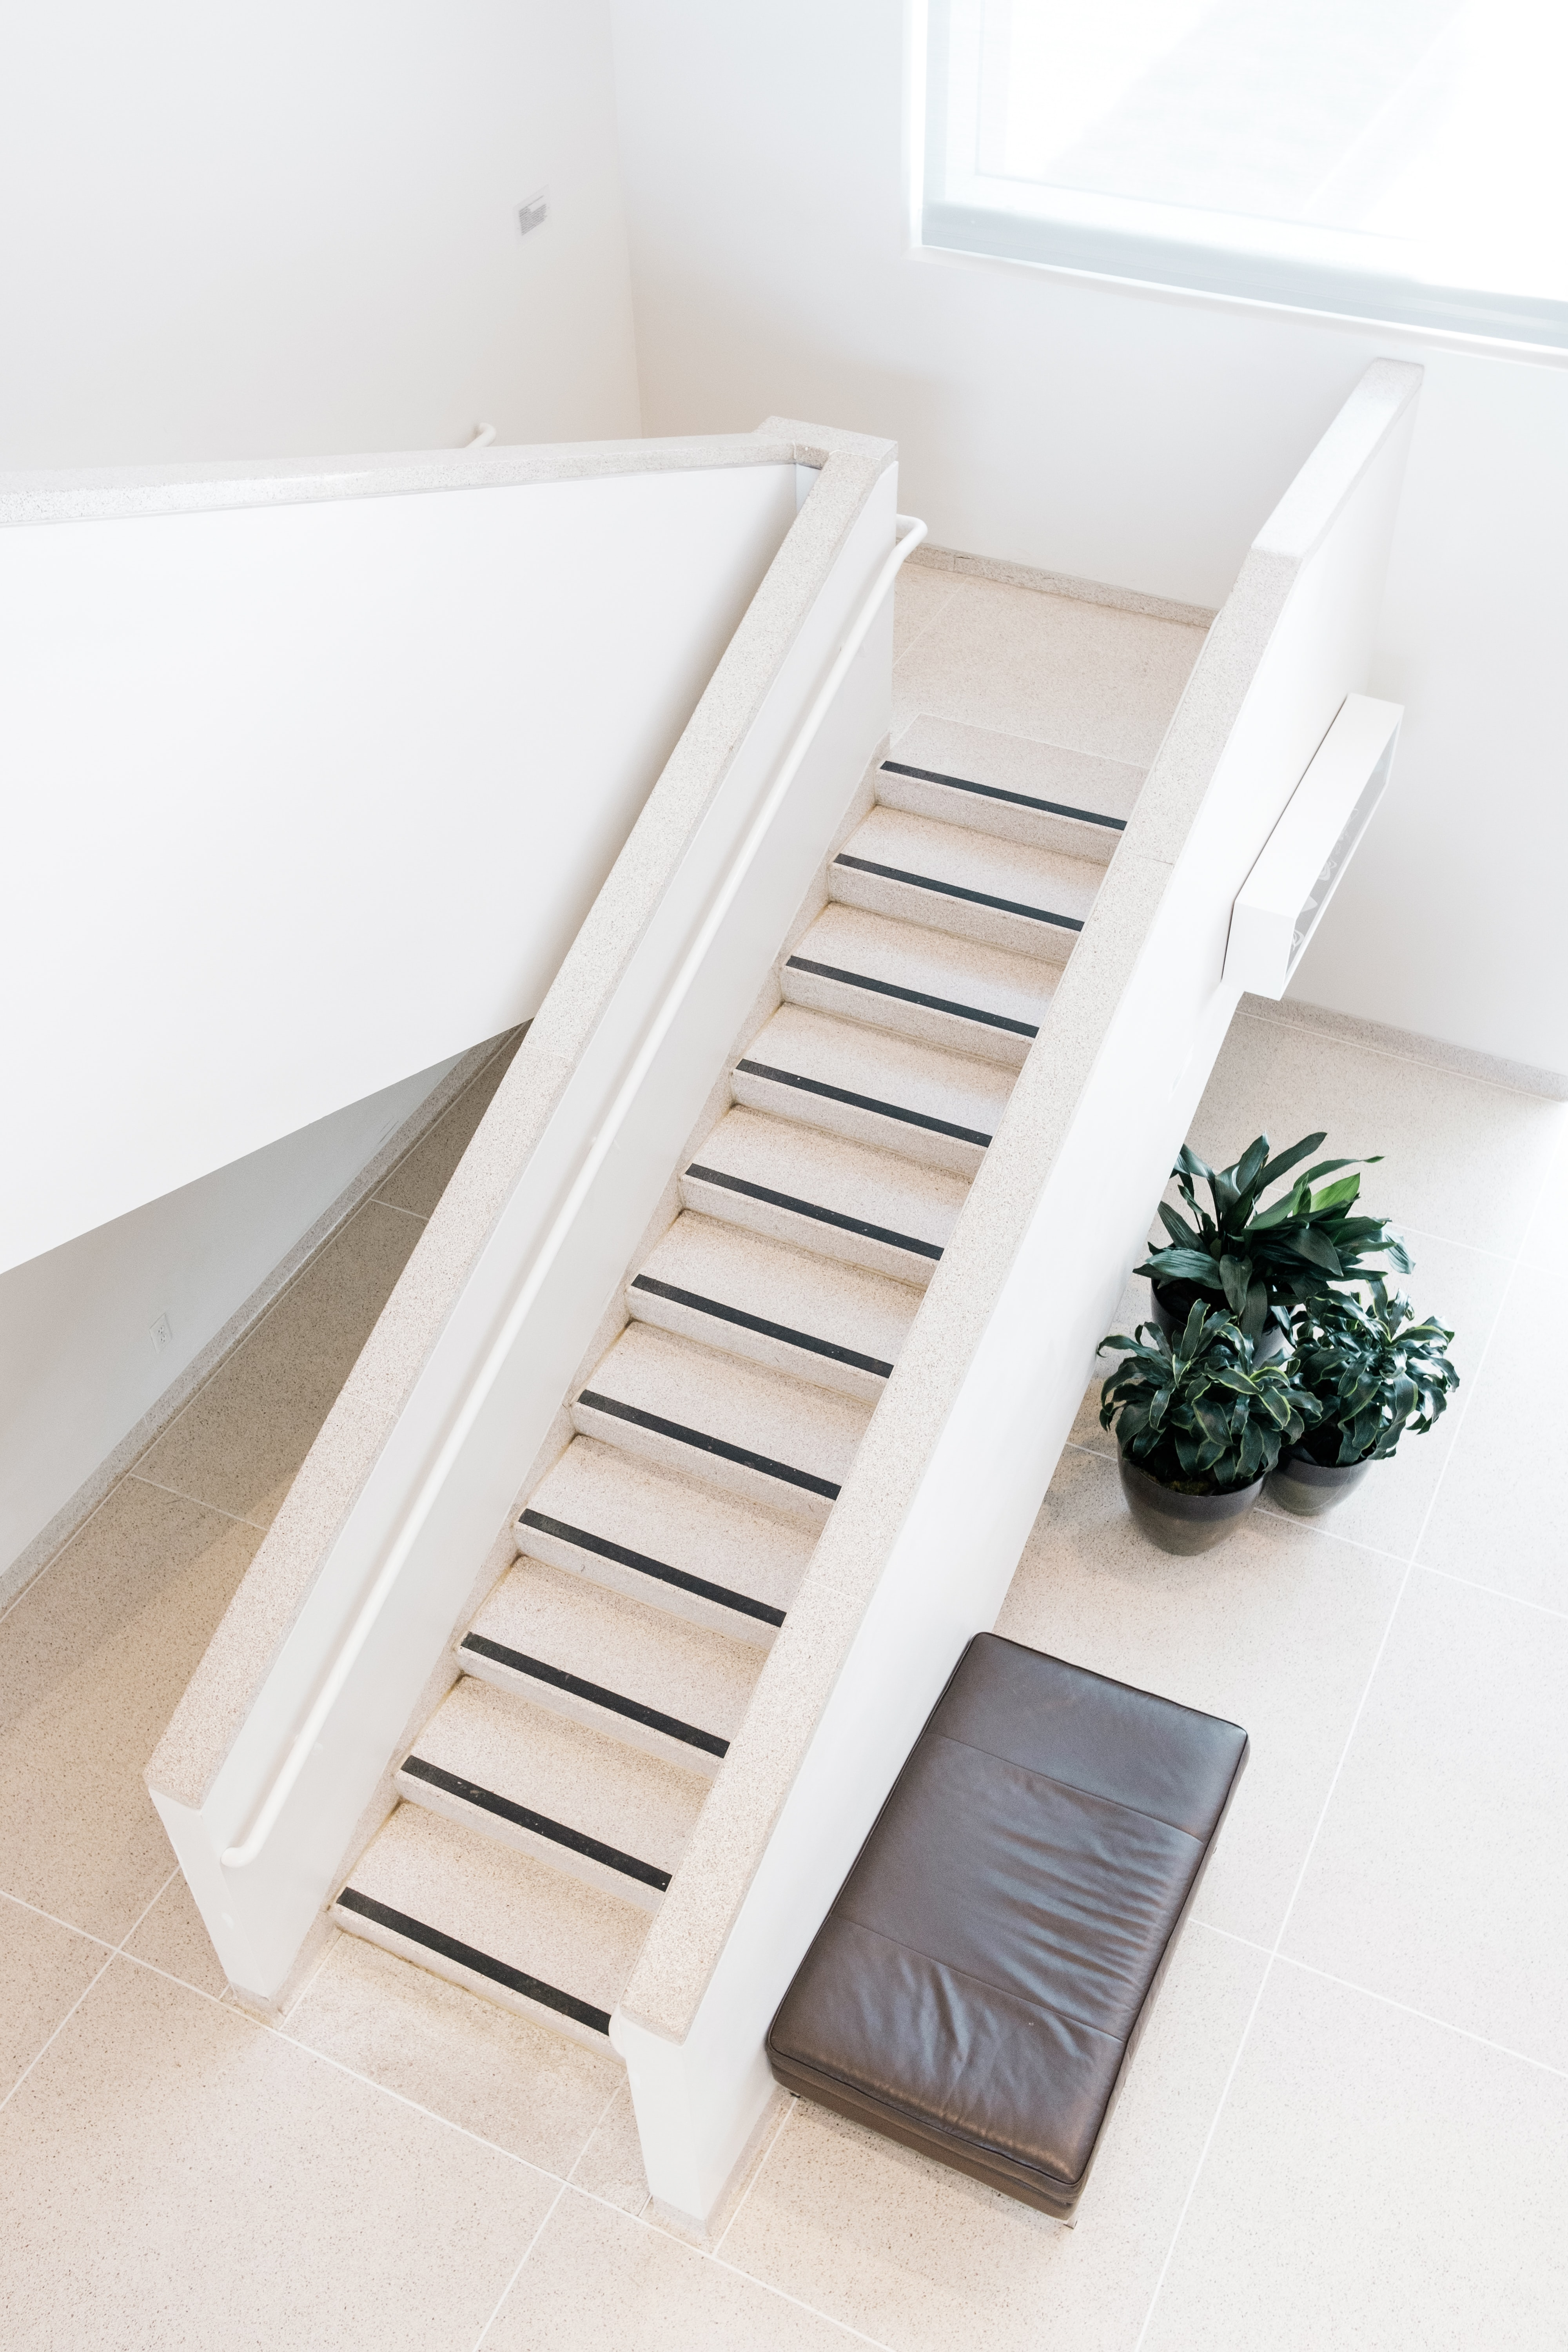 photo of empty stairs